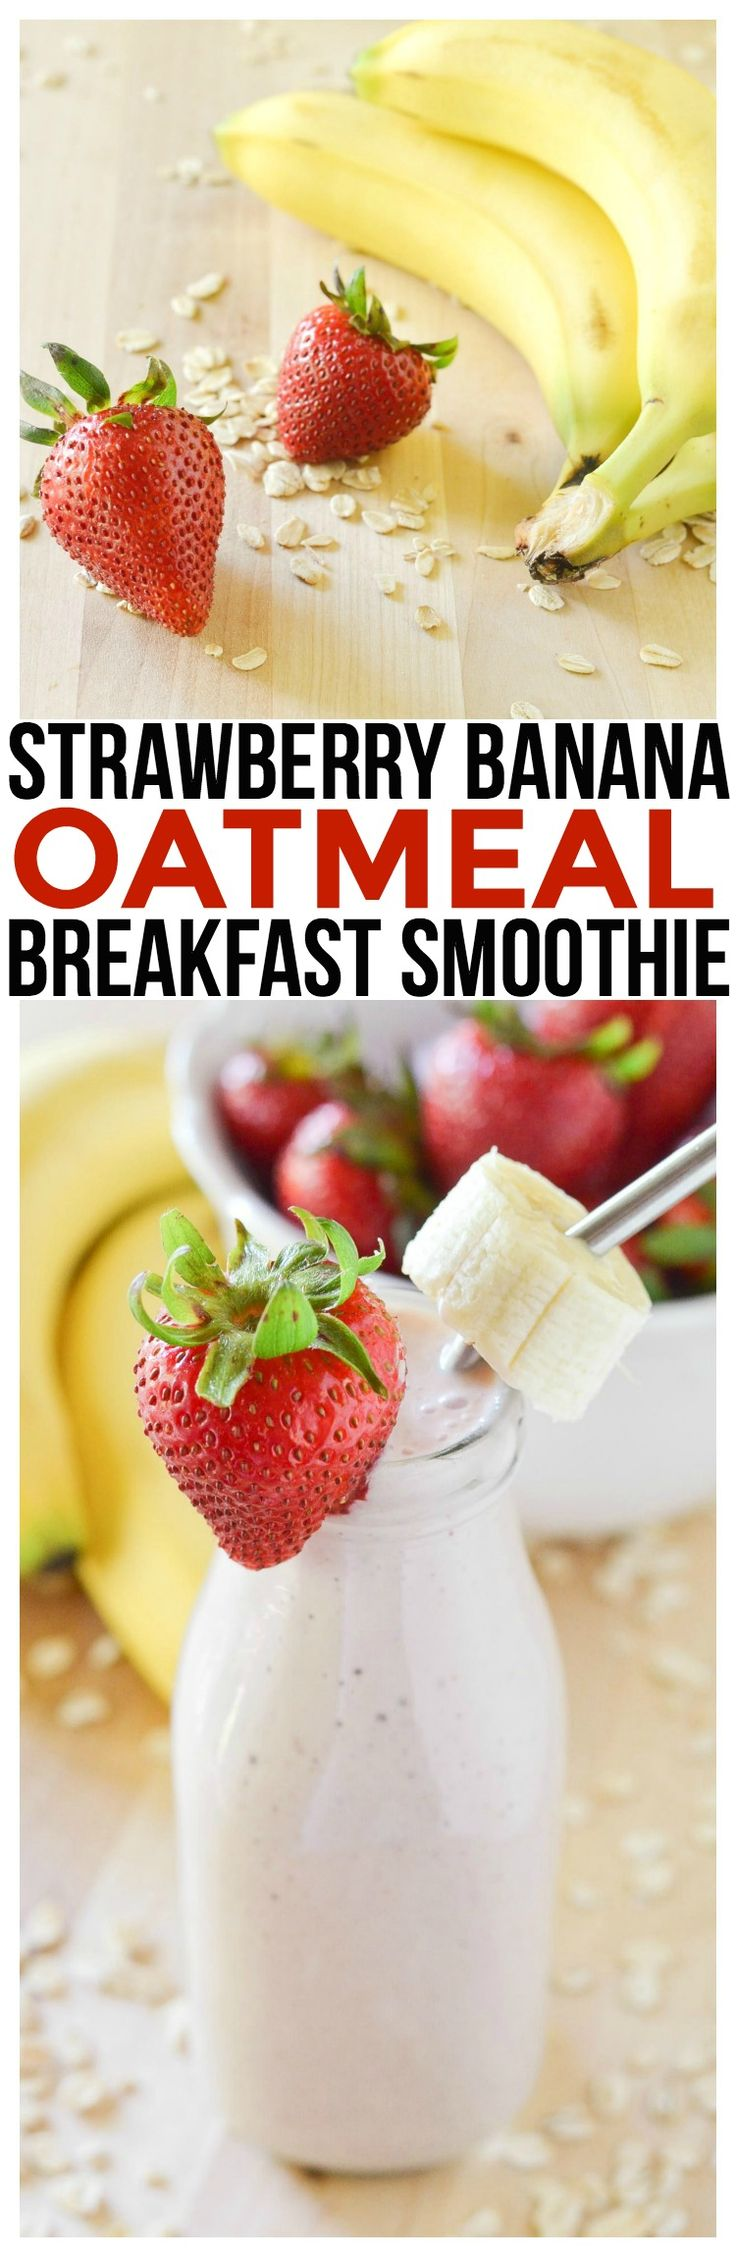 Make this strawberry banana oatmeal smoothie breakfast recipe. One of the easiest smoothie recipes for kids and adults. Quick and easy breakfast recipe! via @KnowYourProduce